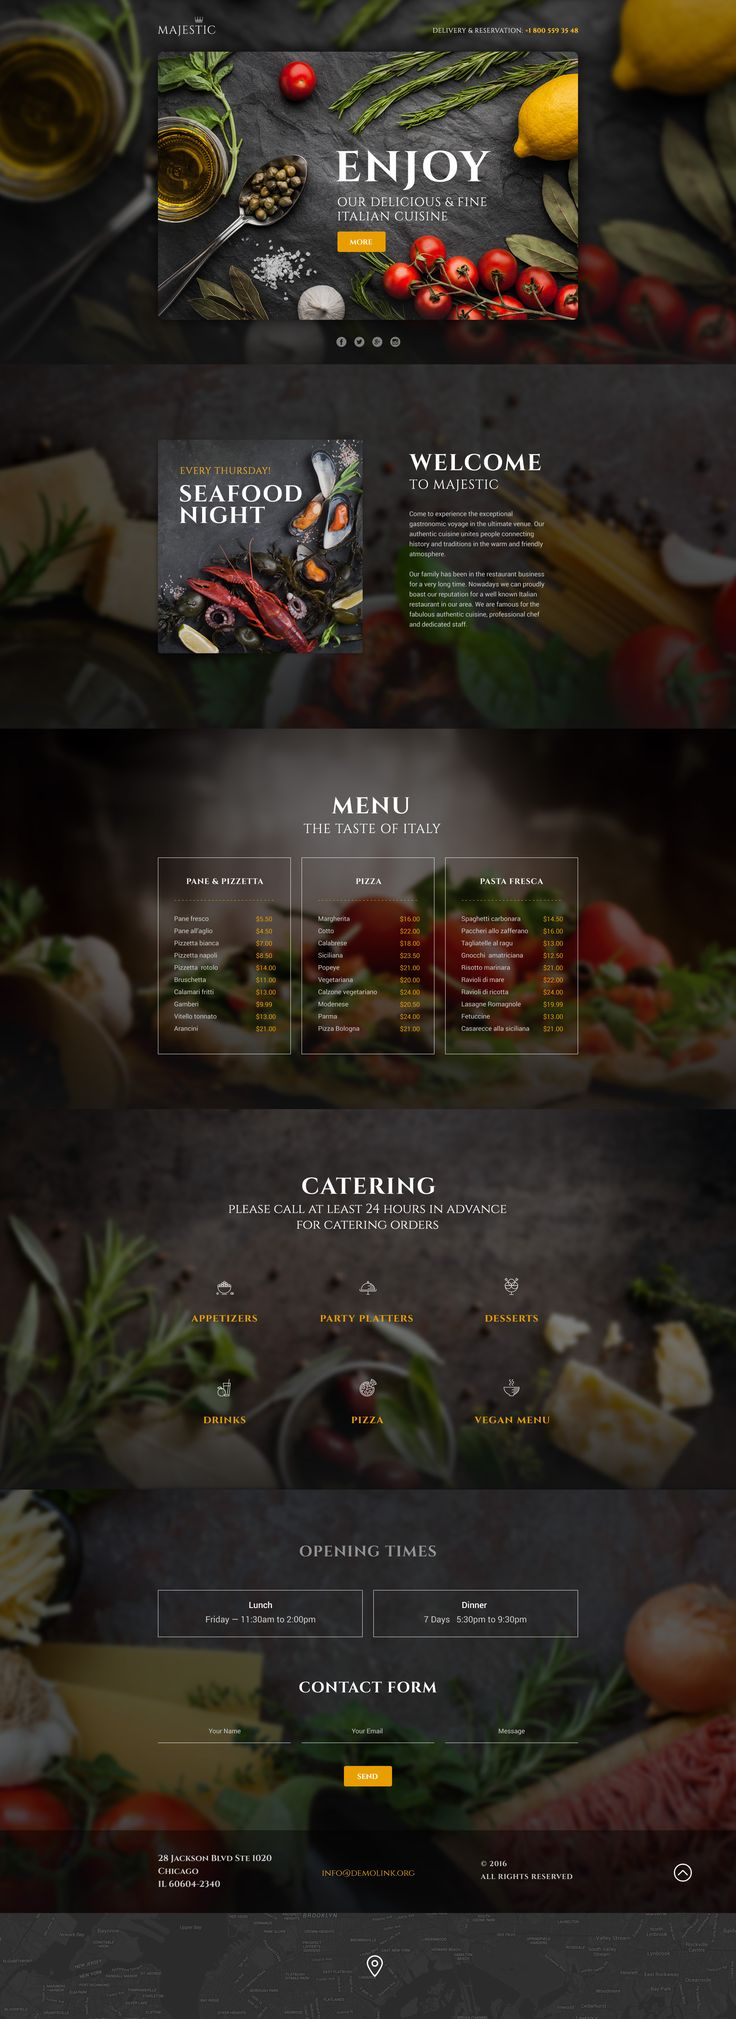 Italian Restaurant Responsive Landing Page Template #58460 http://www.templatemonster.com/landing-page-template/italian-restaurant-responsive-landing-page-template-58460.html